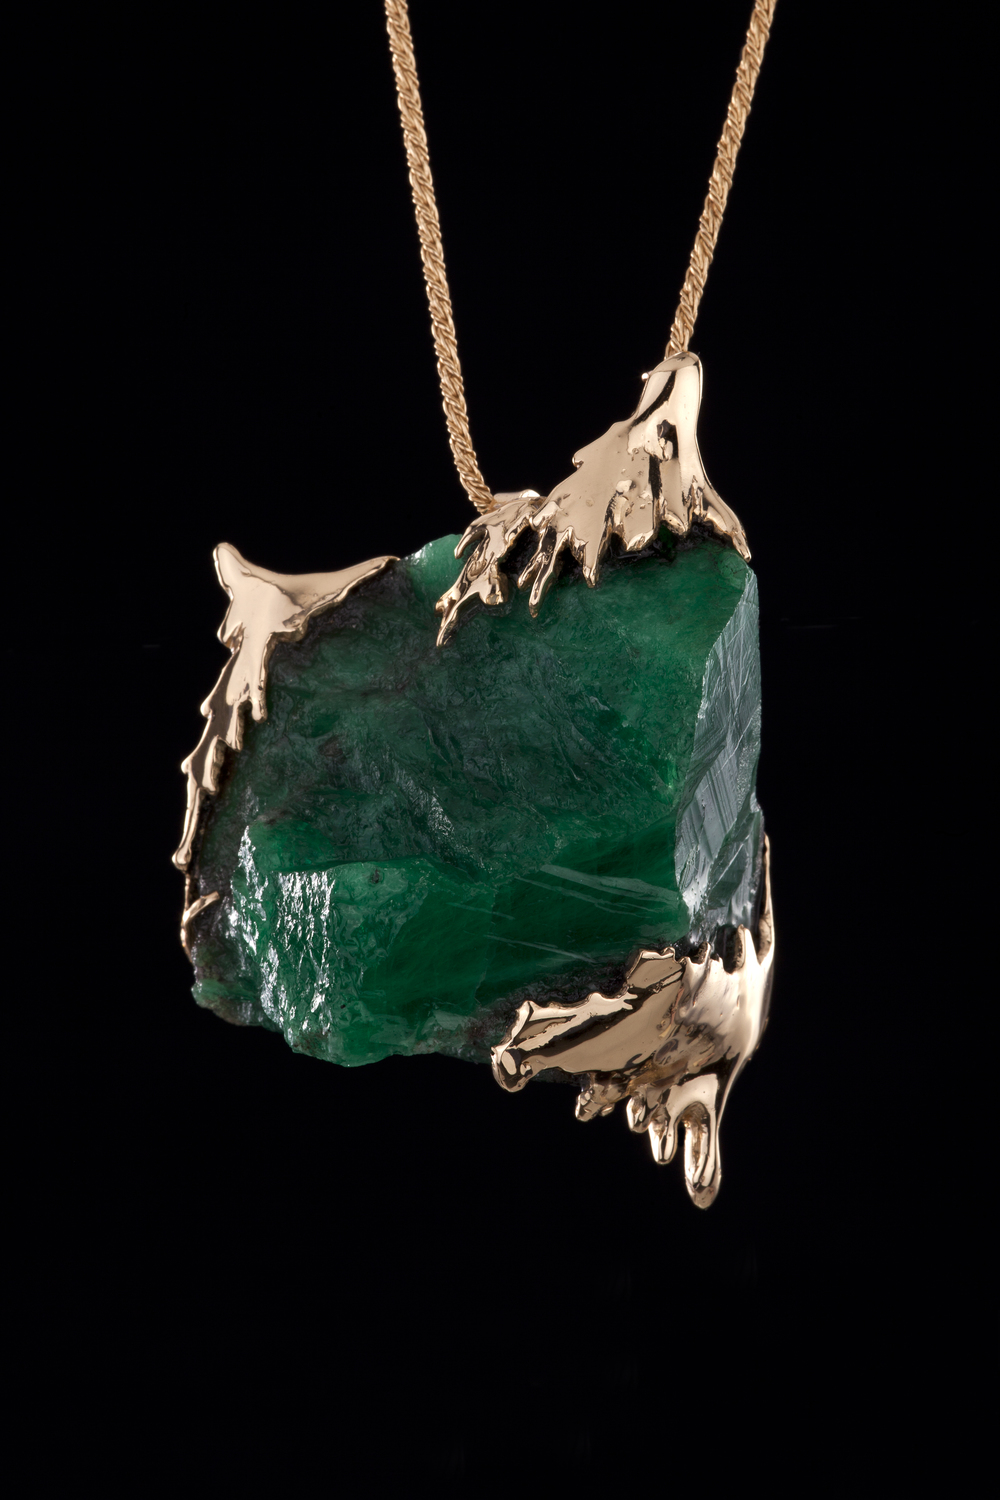 Yunnan emerald necklace